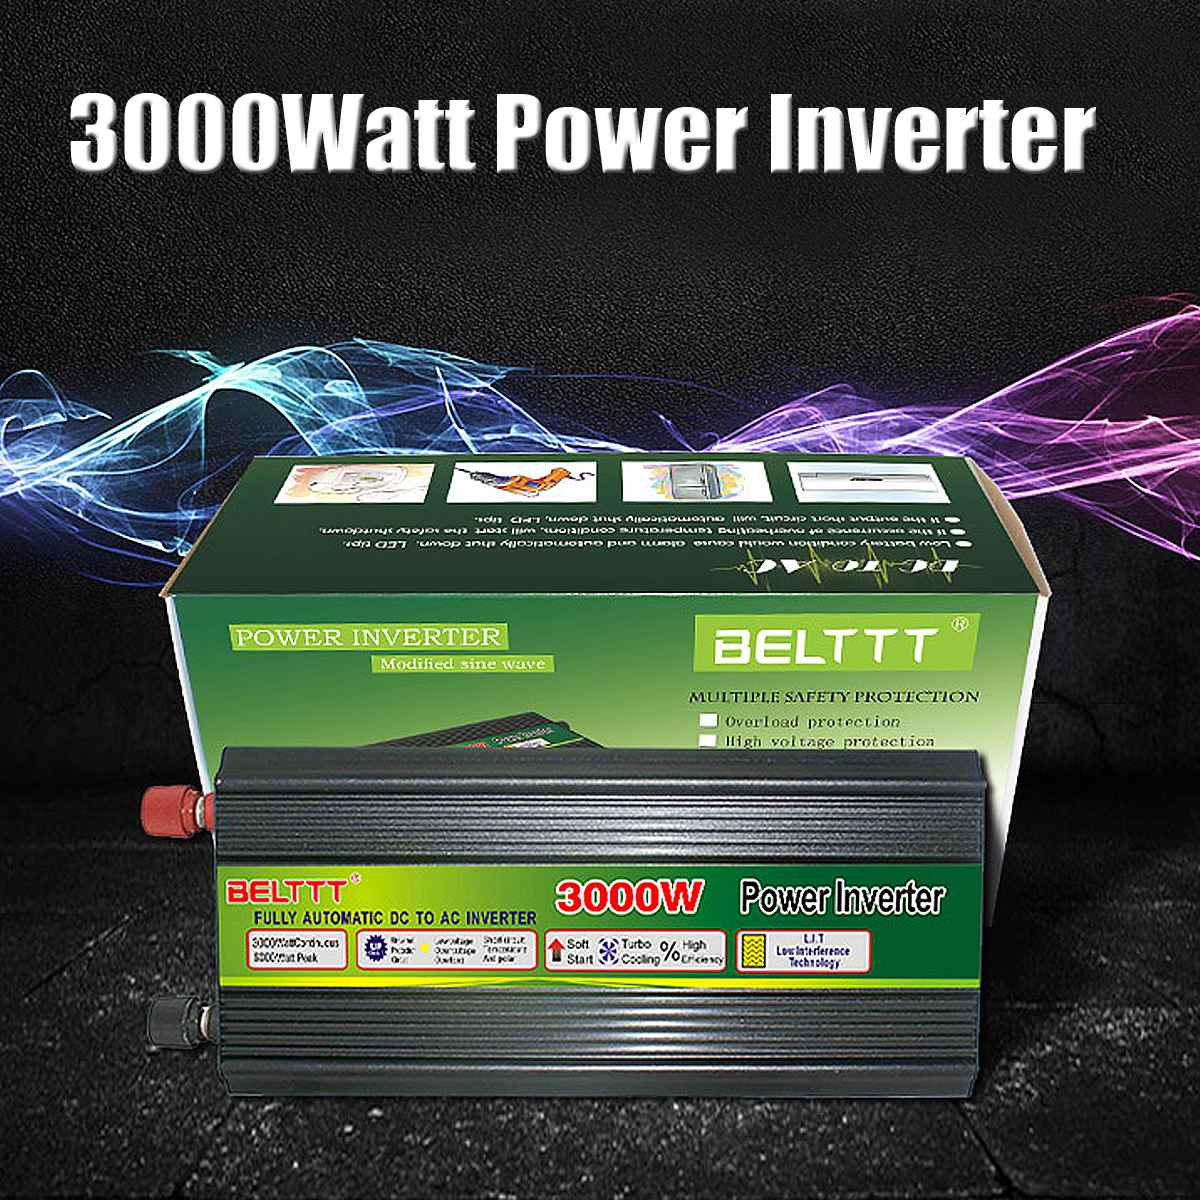 DC12V/24V to AC220V Modified sine wave 3000W 6000W Max Power Inverter + Charger & UPS for Solar/Wind for Car Inverters